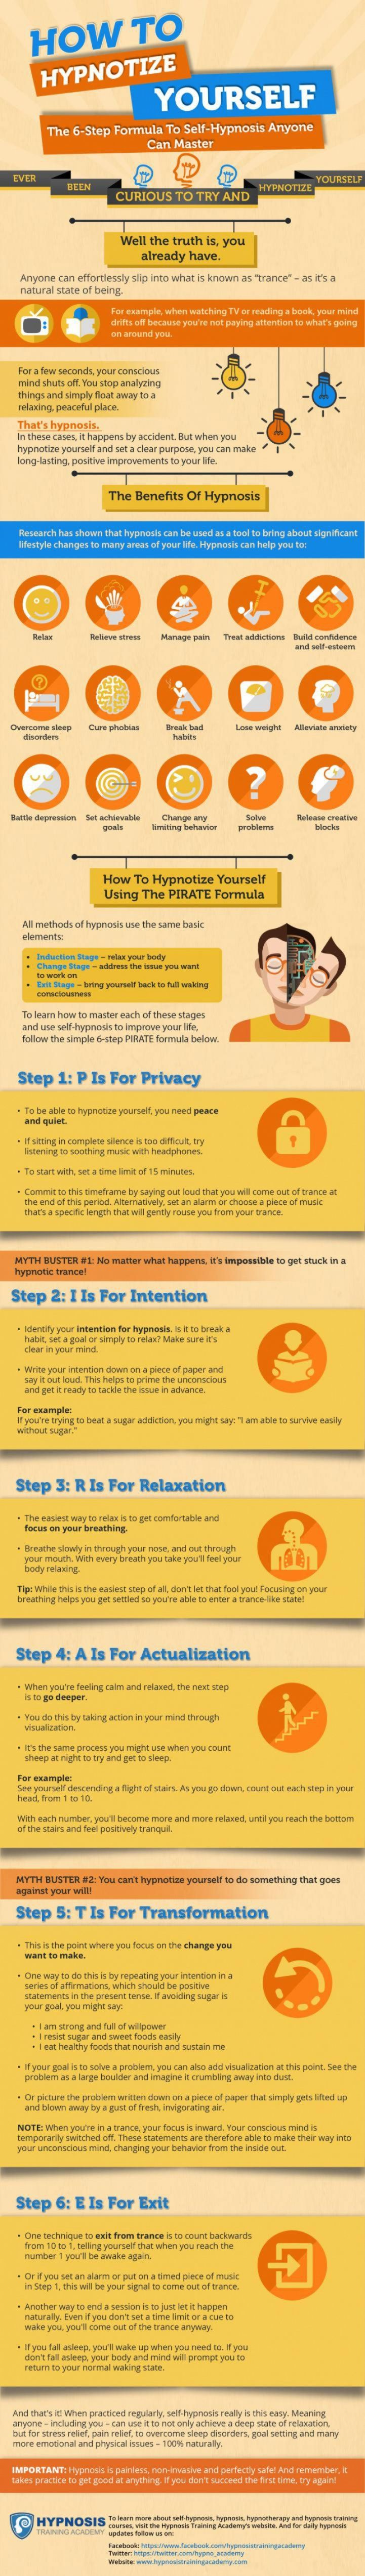 How To Hypnotize Yourself The 6 Step Formula To Self Hypnosis Anyone Can Master Infographic Learn Hypnosis Hypnosis Hypnotize Yourself